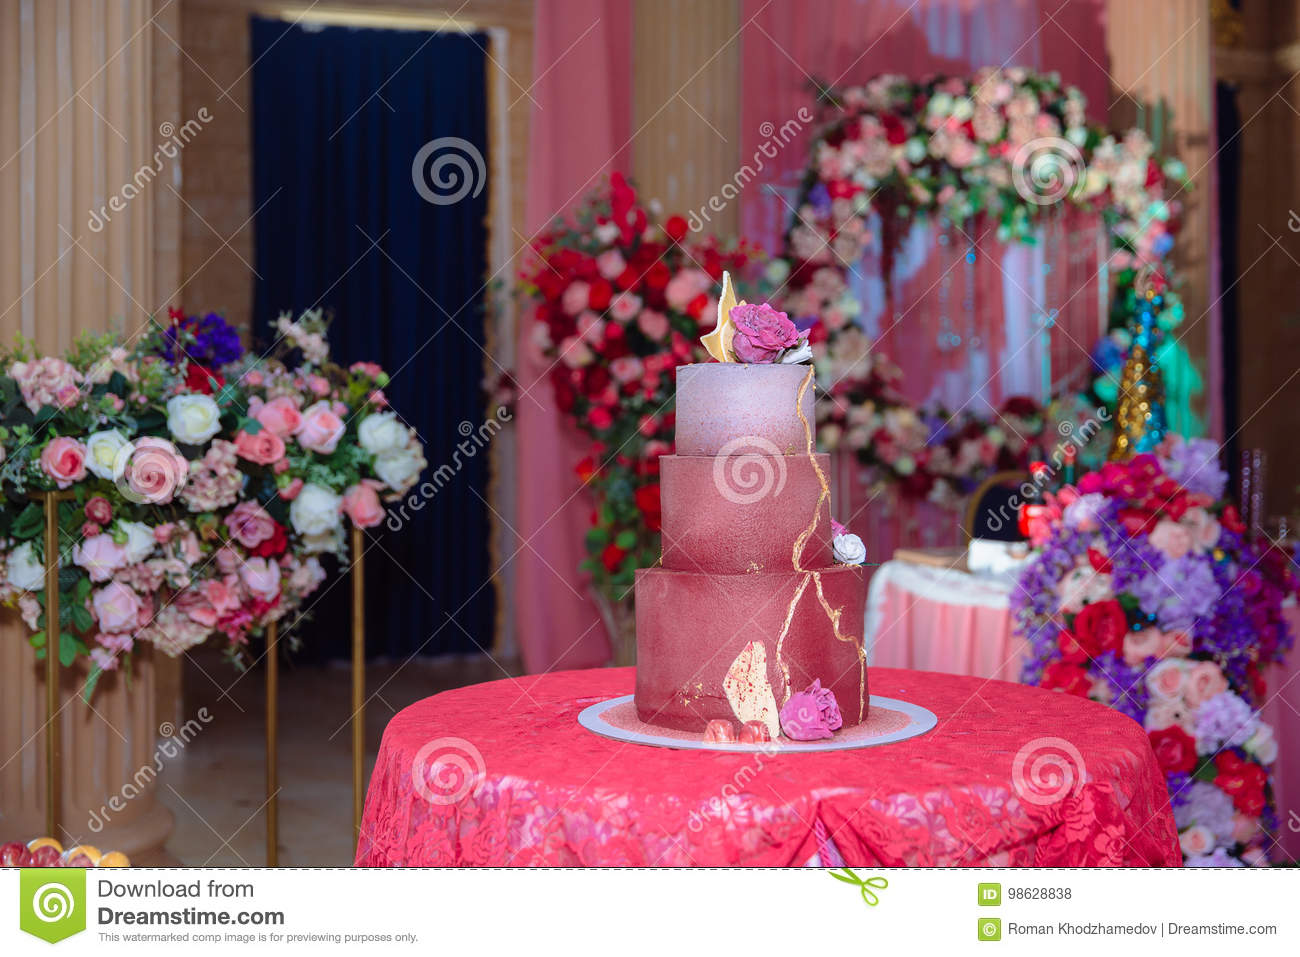 Big Sweet Multilevel Wedding Cake Decorated With Flowers. Concept Of ...